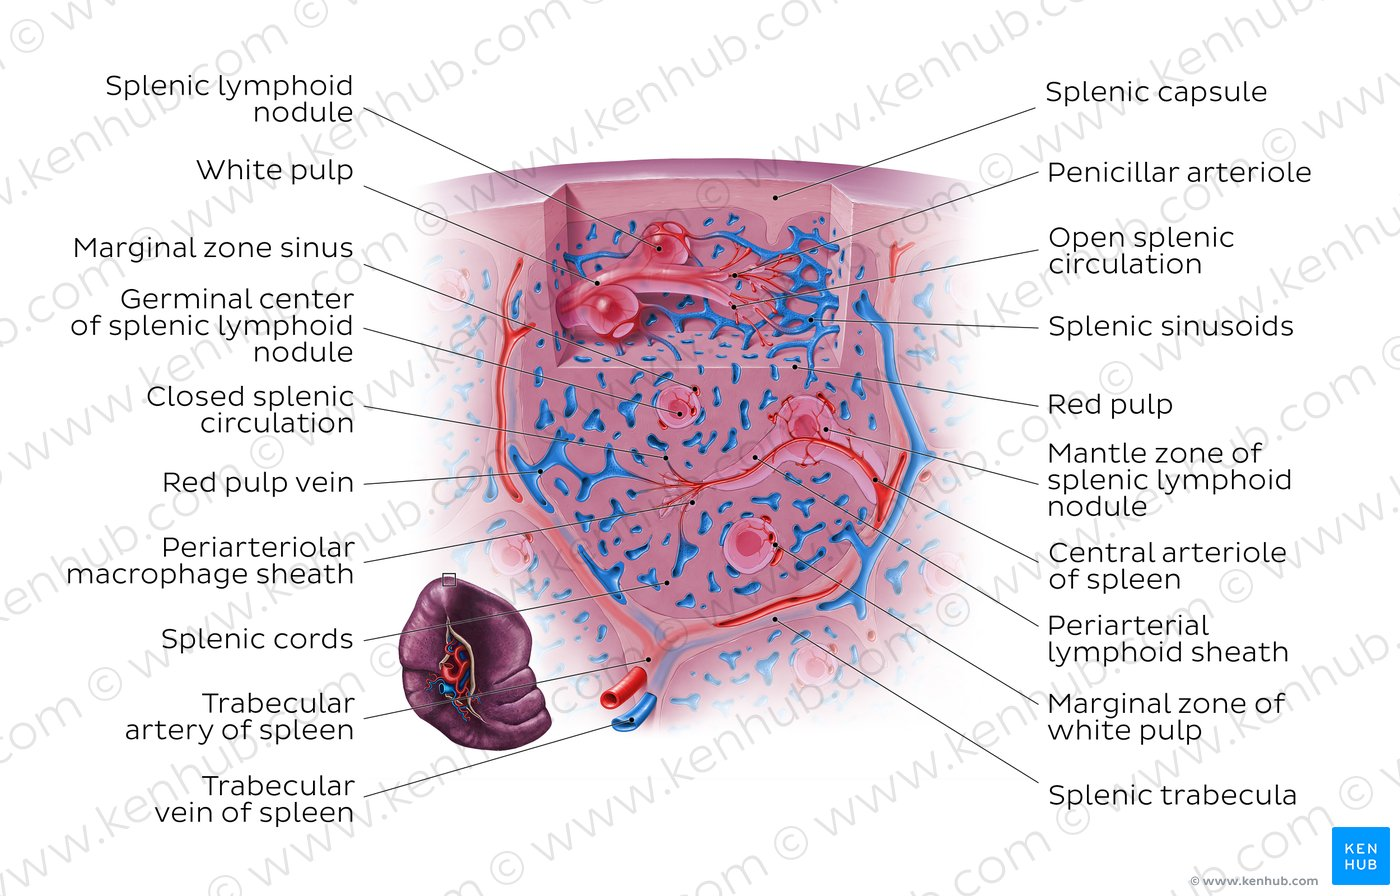 Spleen. The size of the spleen. The structure of the spleen. Spleen shape. Spleen Histology, Topographic Anatomy of Spleen - structure, shape, vessels & Nerve Supply